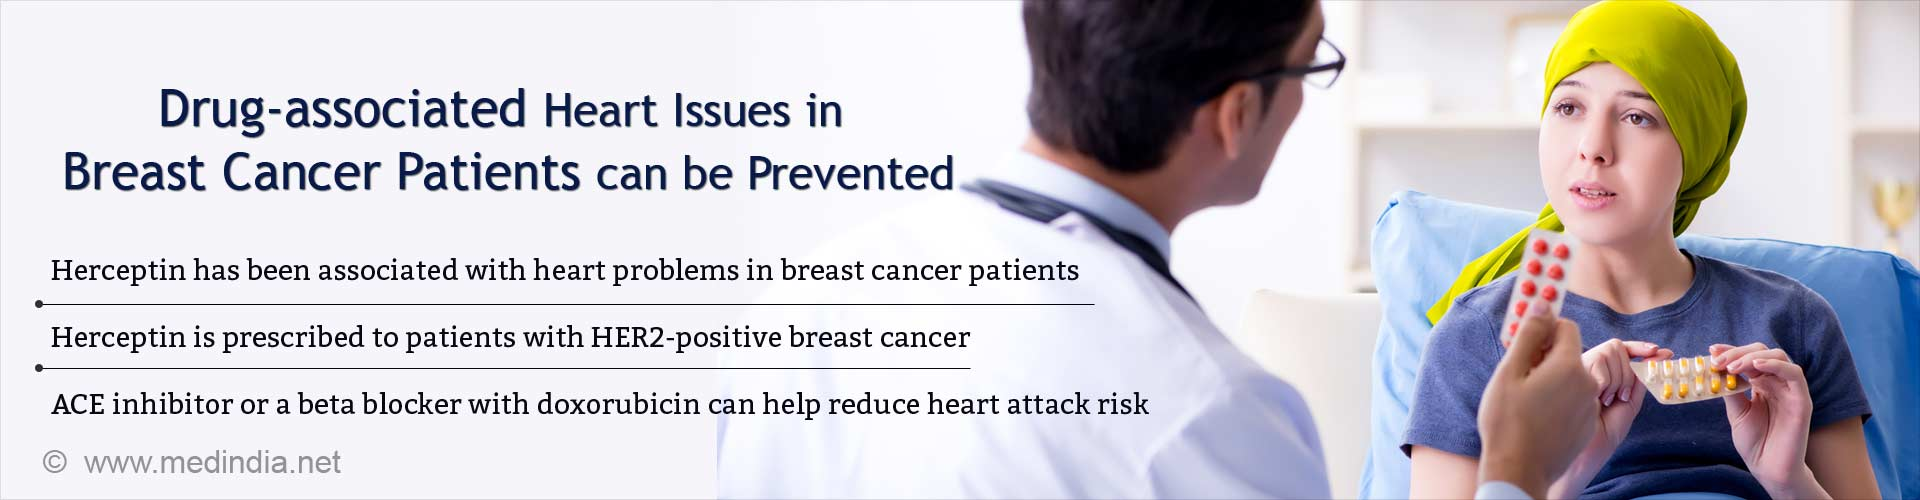 Herceptin Associated Heart Problems can be Prevented In Cancer Patients